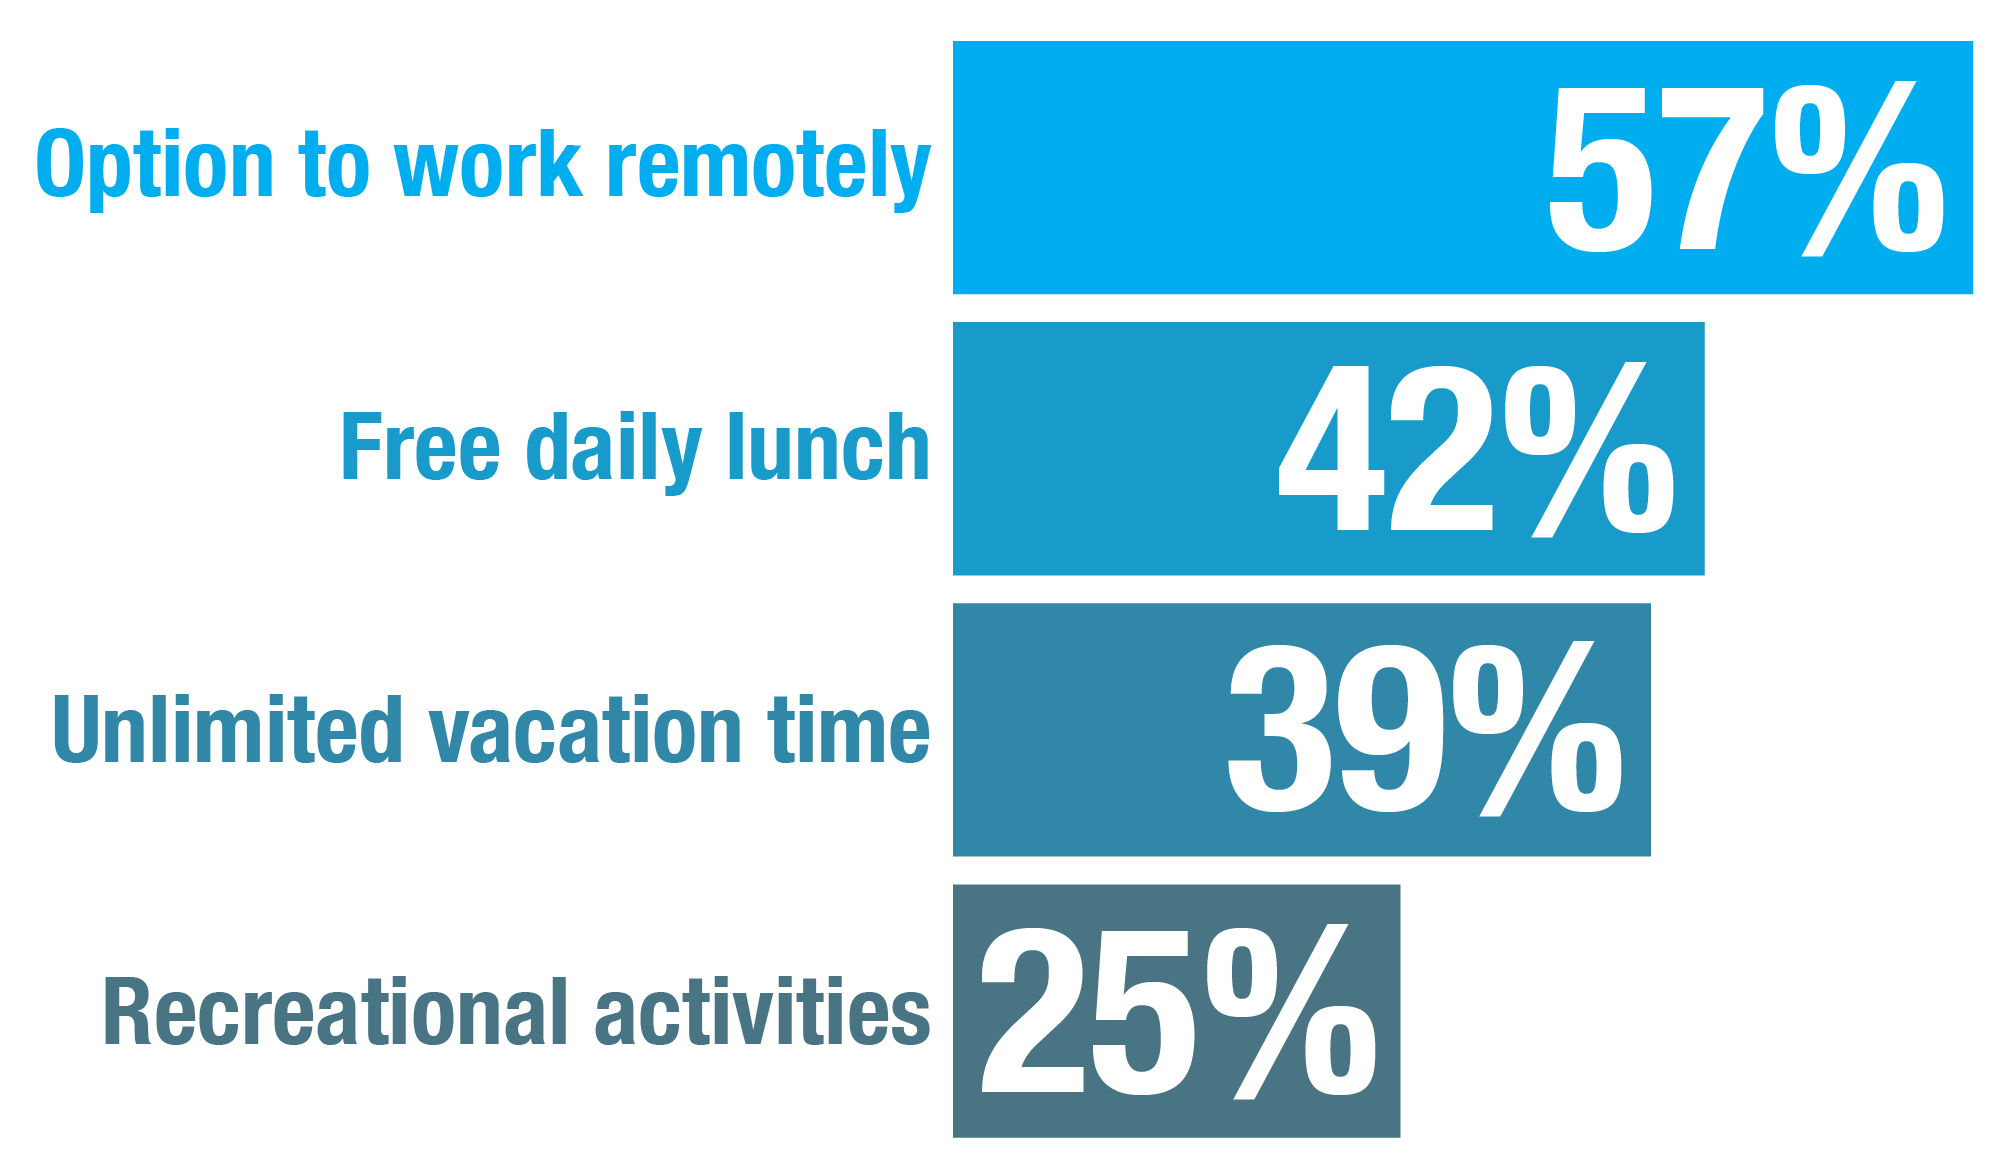 Bar chart to show what perks employees prefer